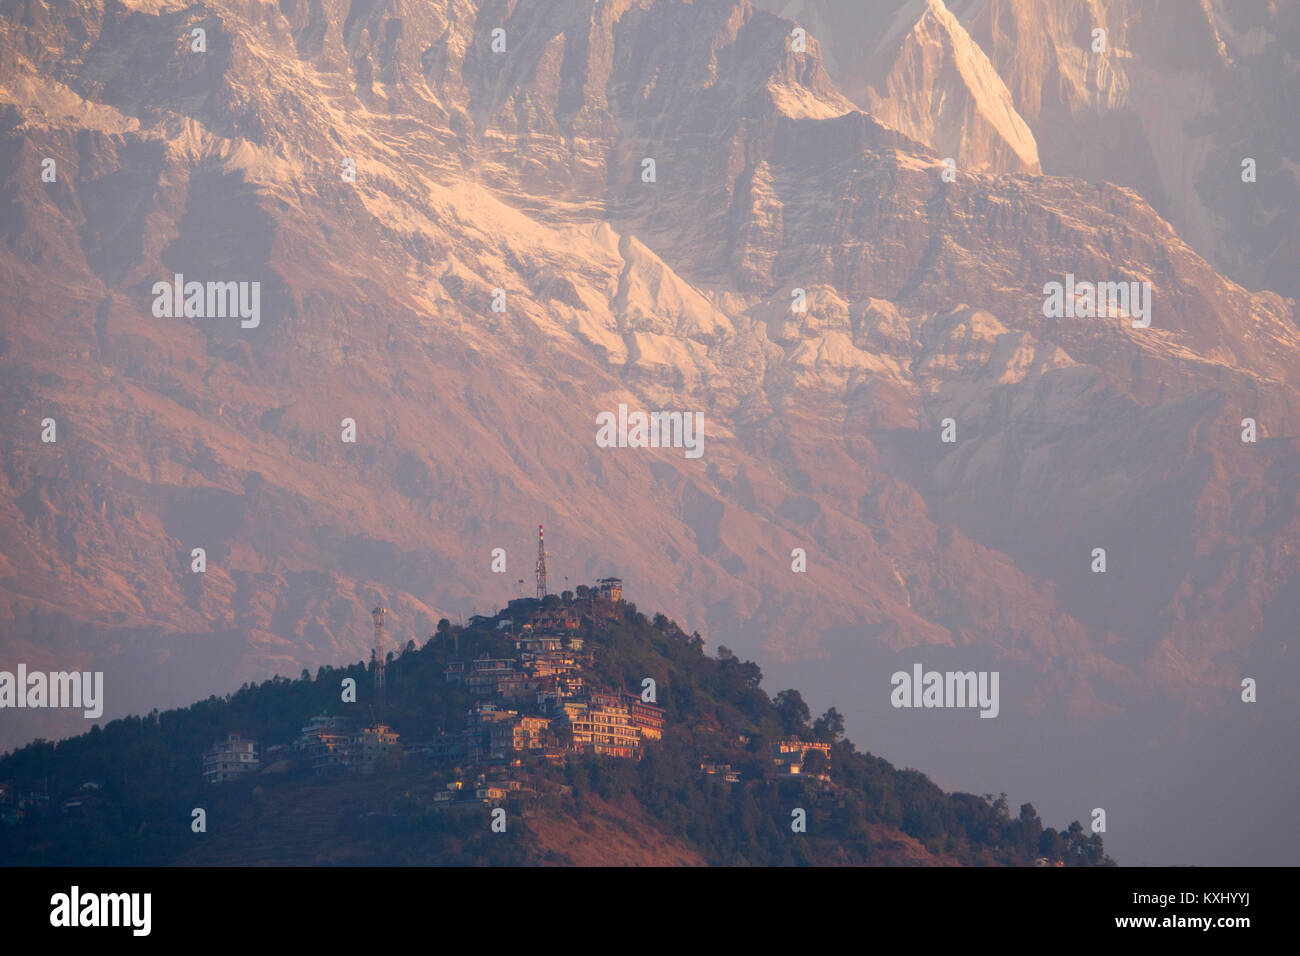 View of Sarankot dwarfed by the Annapurna mountains in the background, Neapl - Stock Image